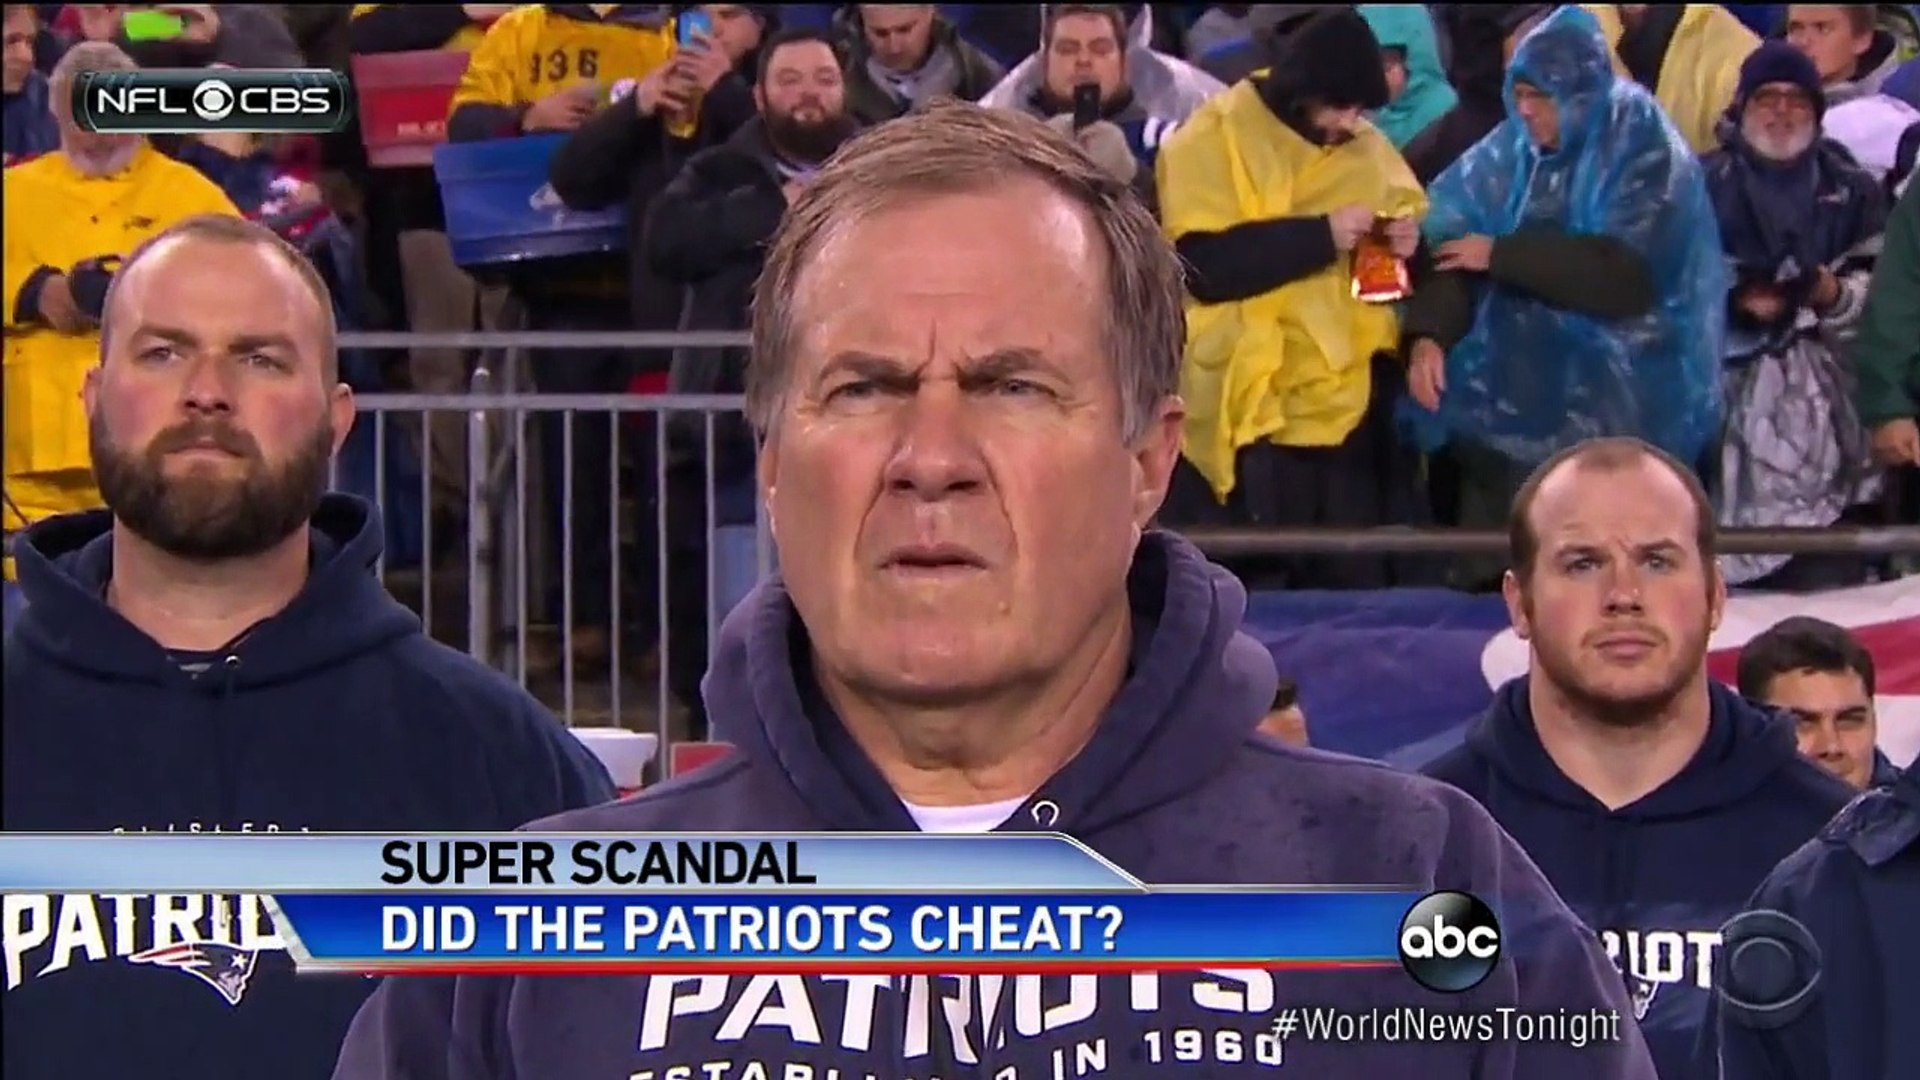 Pressure on the New England Patriots Over Under-Inflated Footballs.